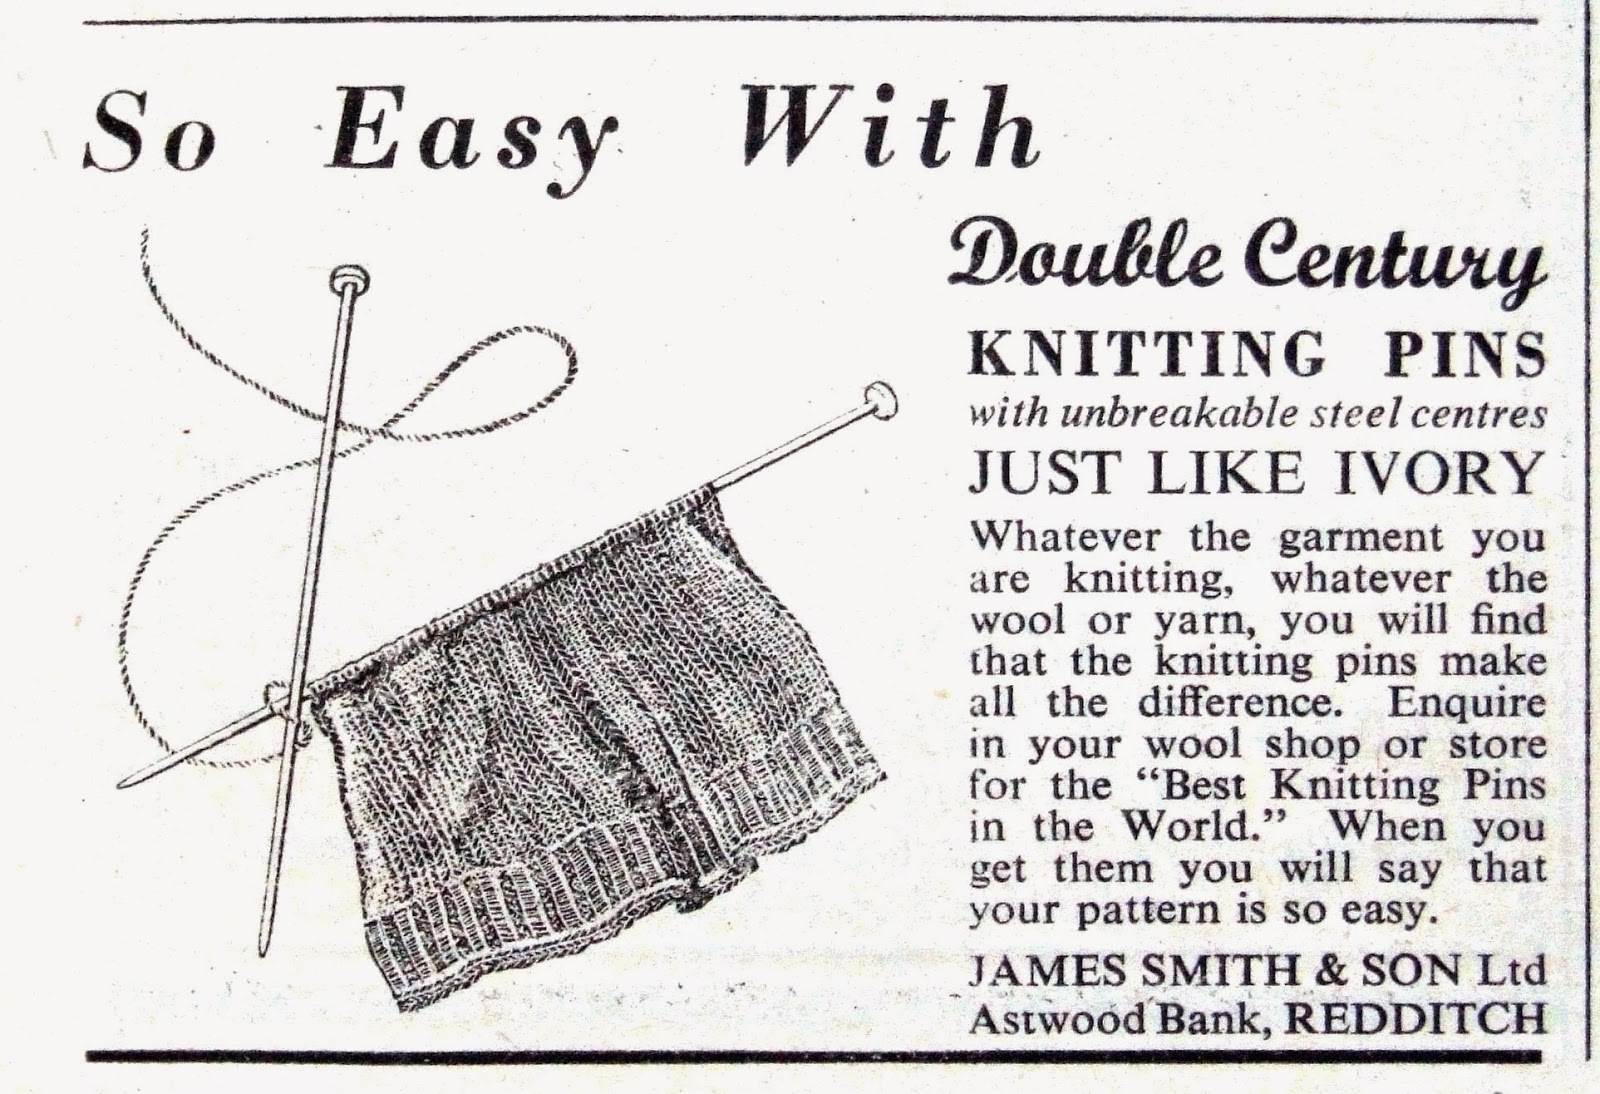 Vintage knitting needles, 1950s